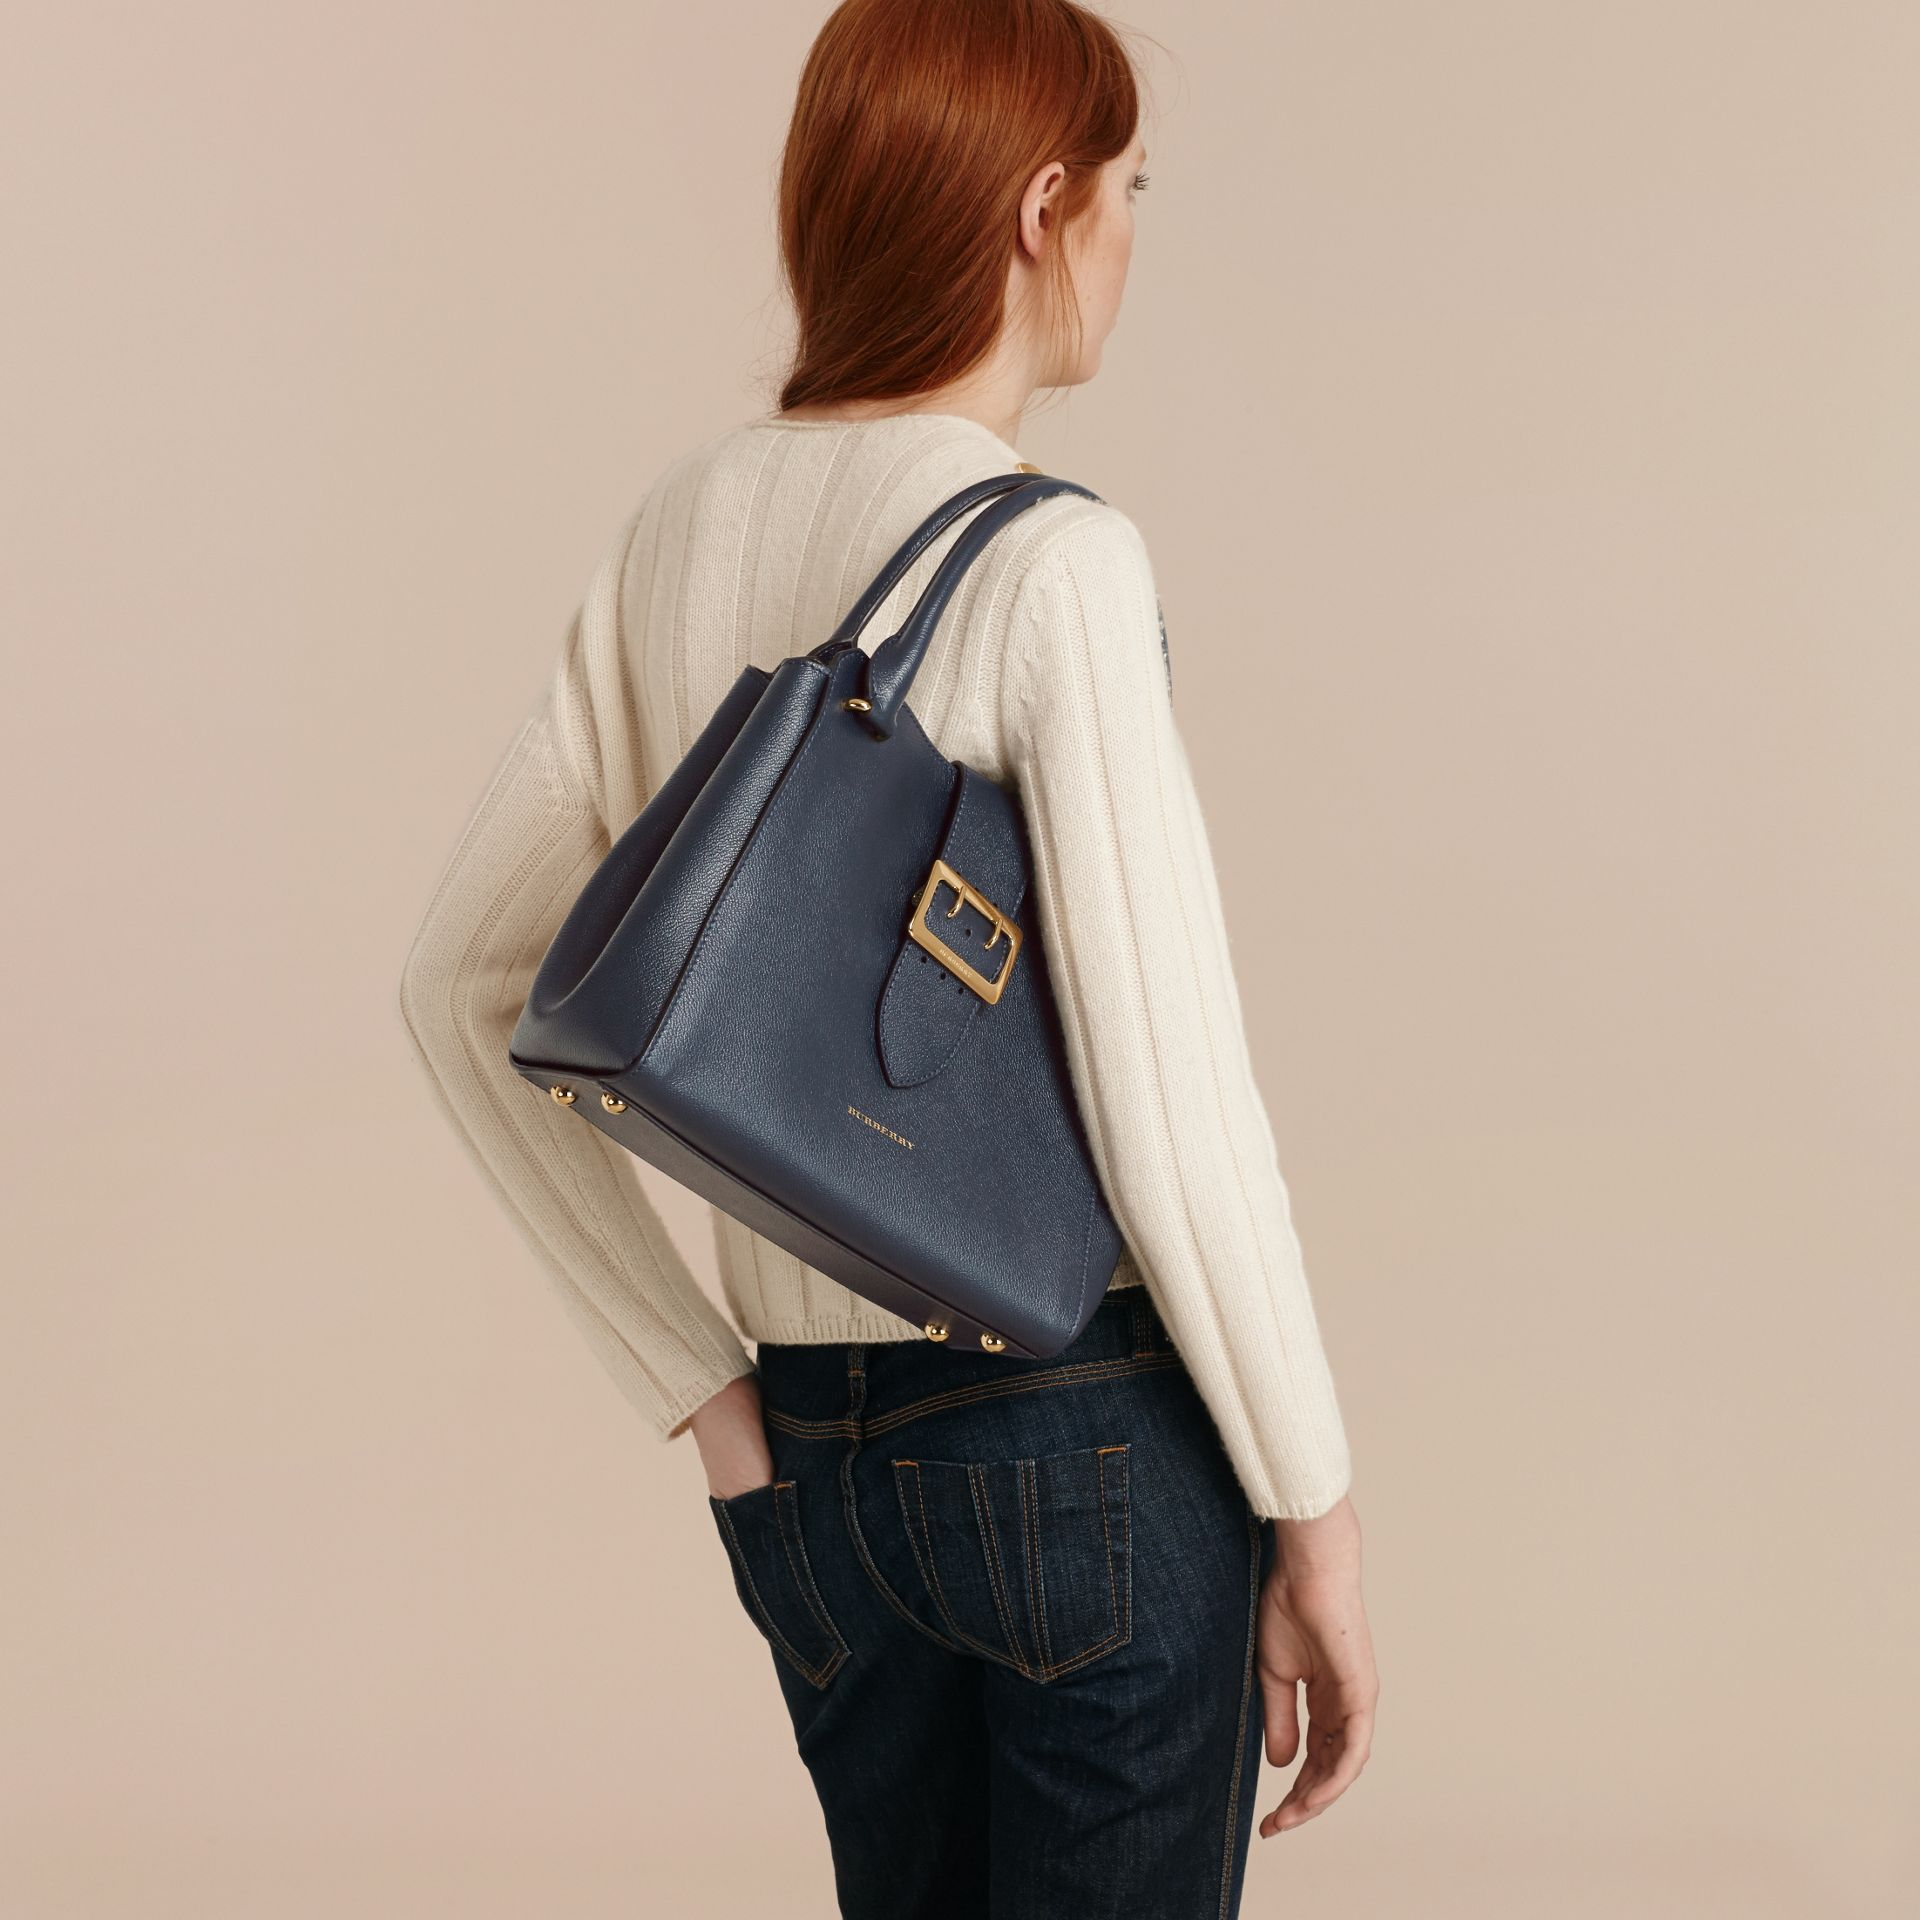 Blue carbon The Medium Buckle Tote in Grainy Leather Blue Carbon - gallery image 3